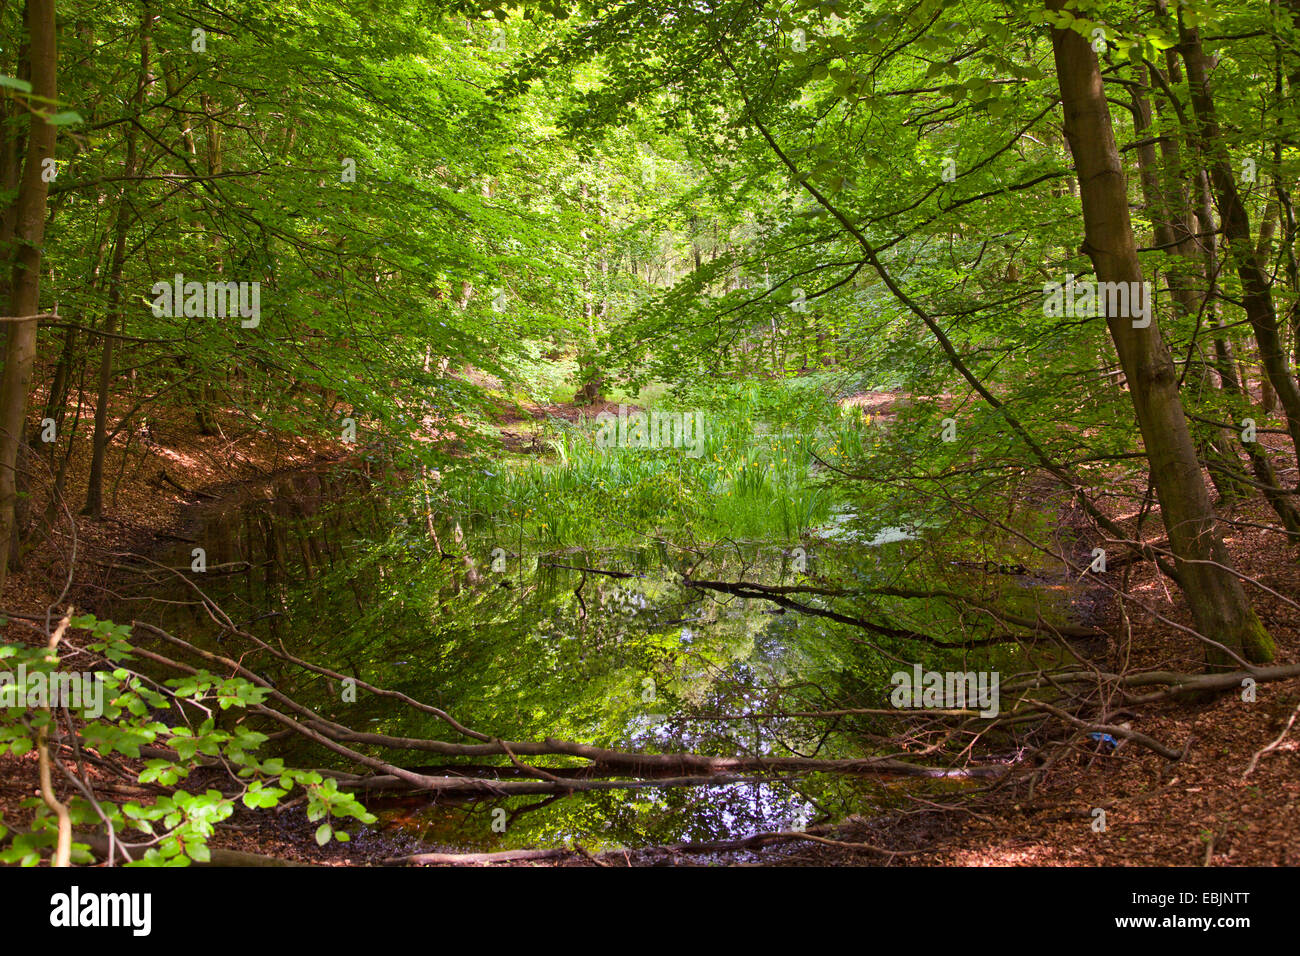 pond in a swamp forest, Germany, Mecklenburg-Western Pomerania - Stock Image